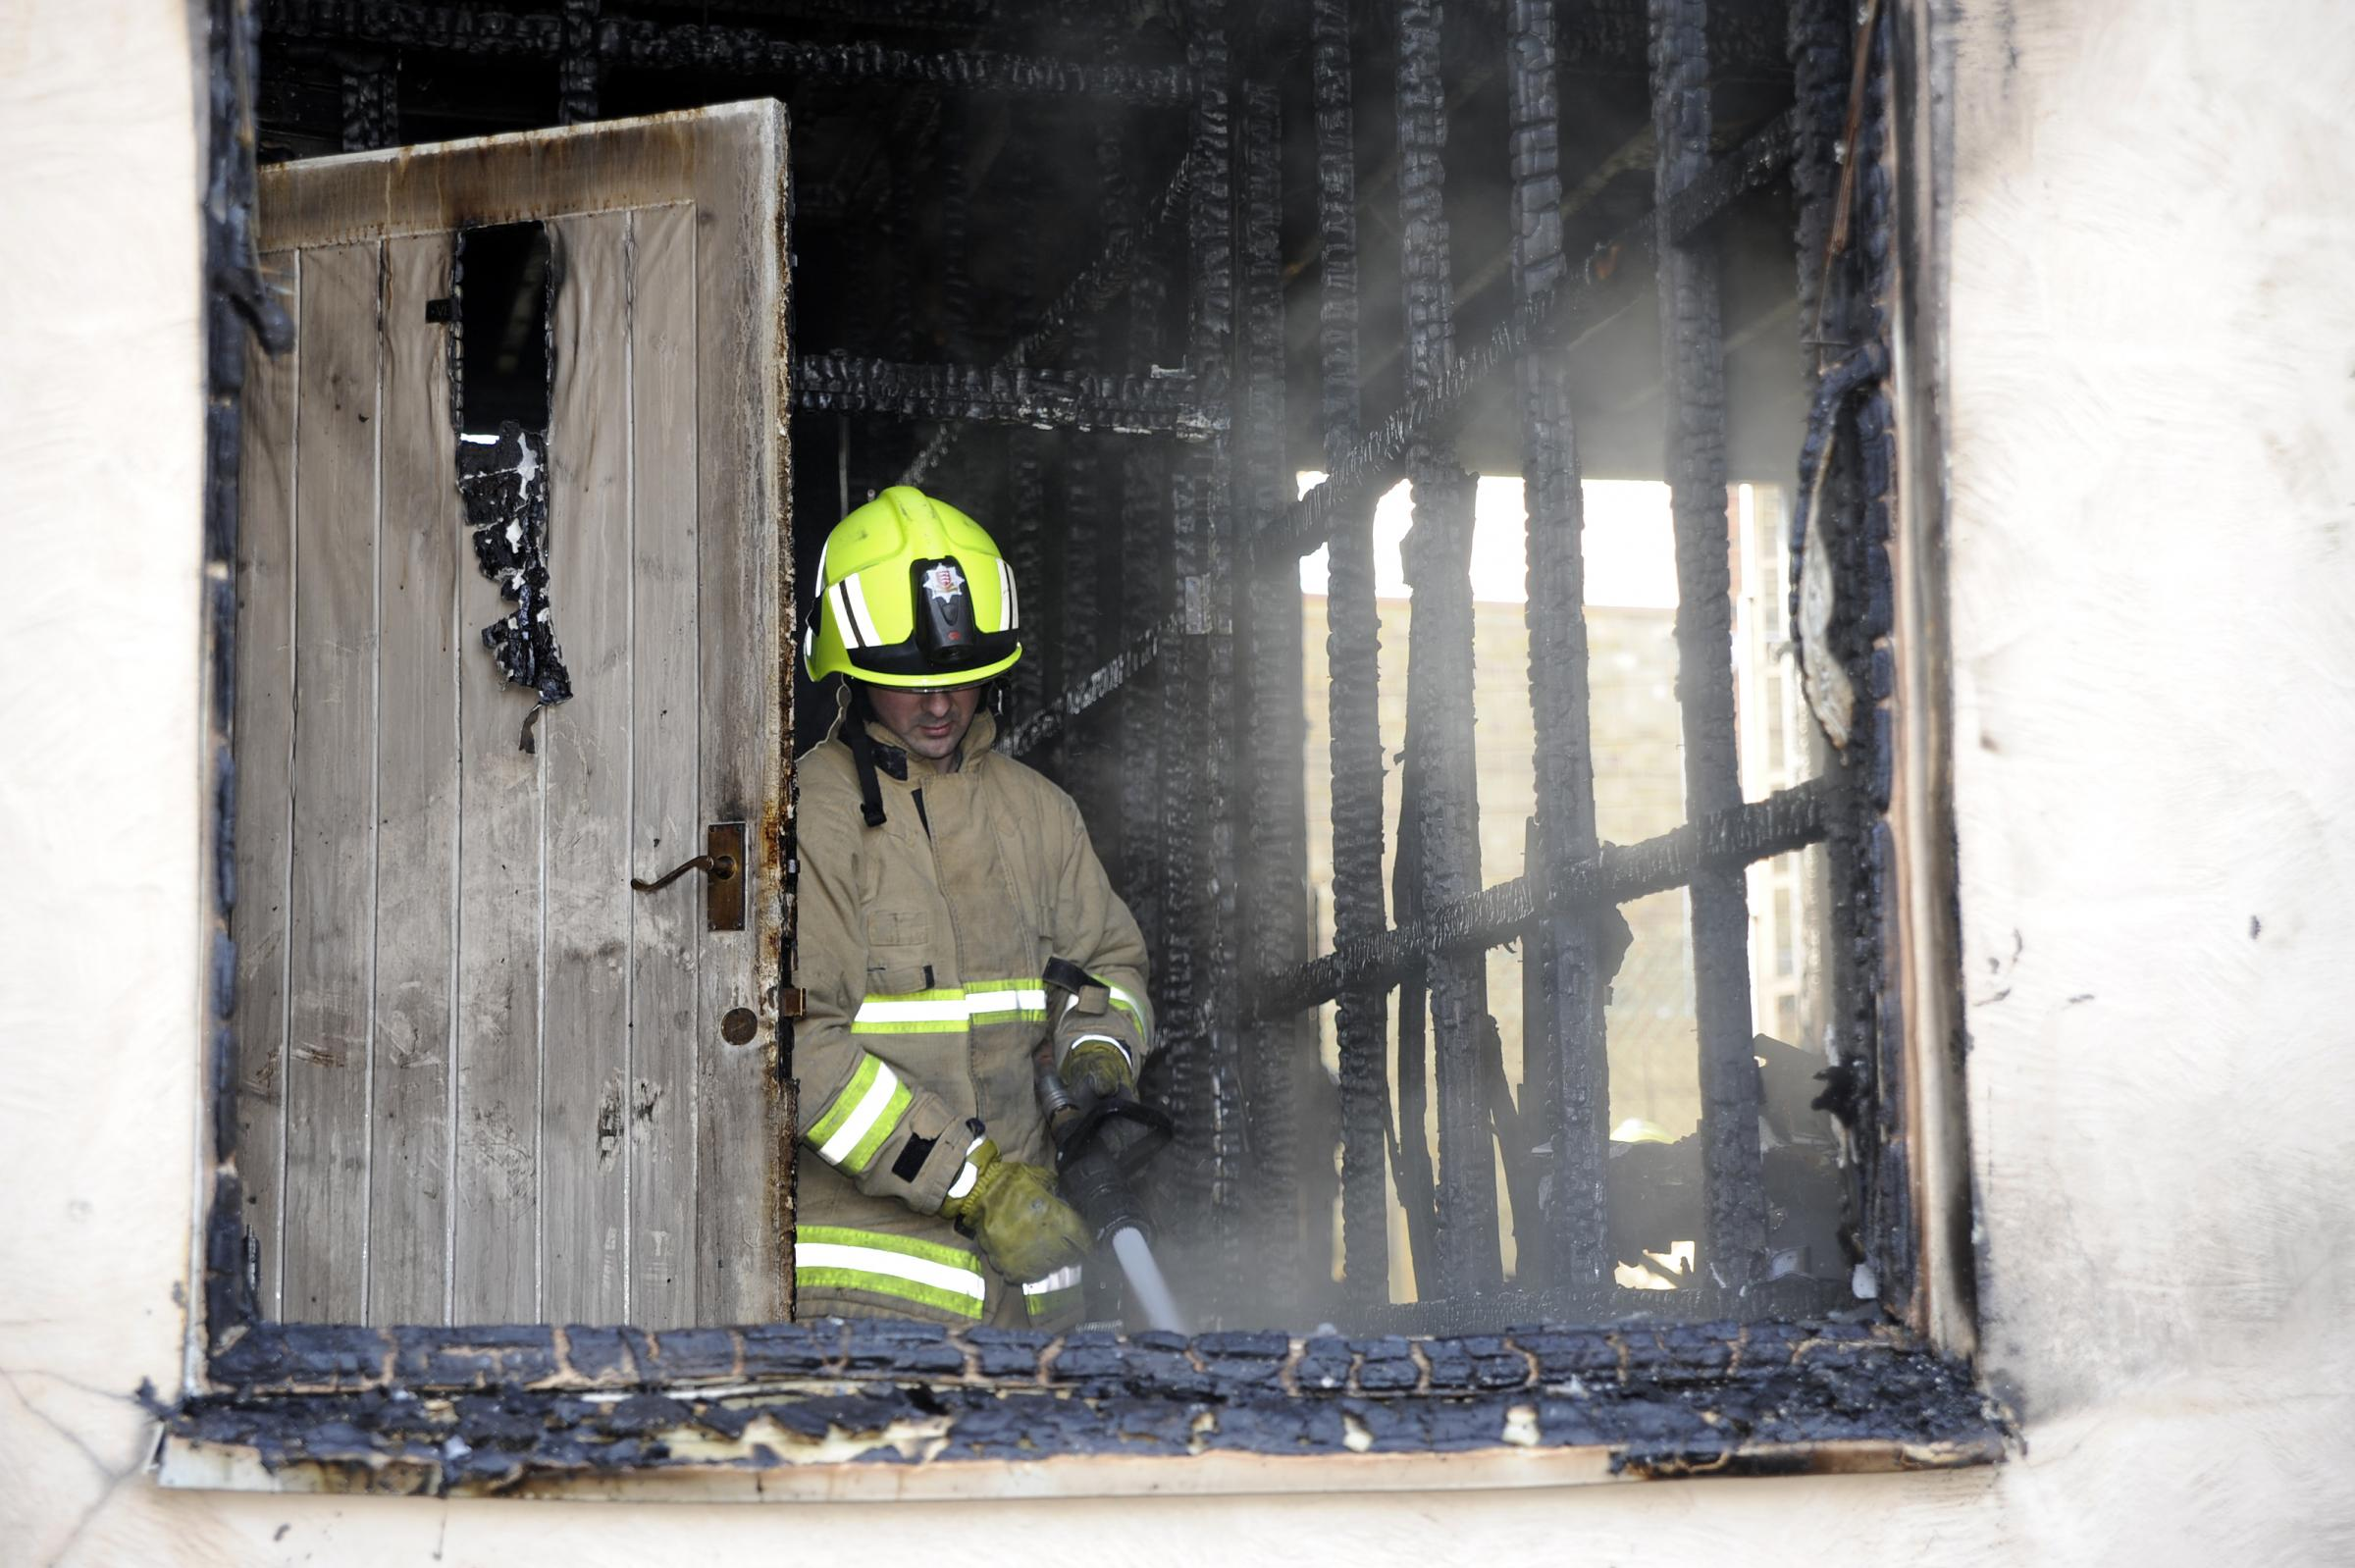 A firefighter at the scene on Monday. Pictures by Alistair Underwood